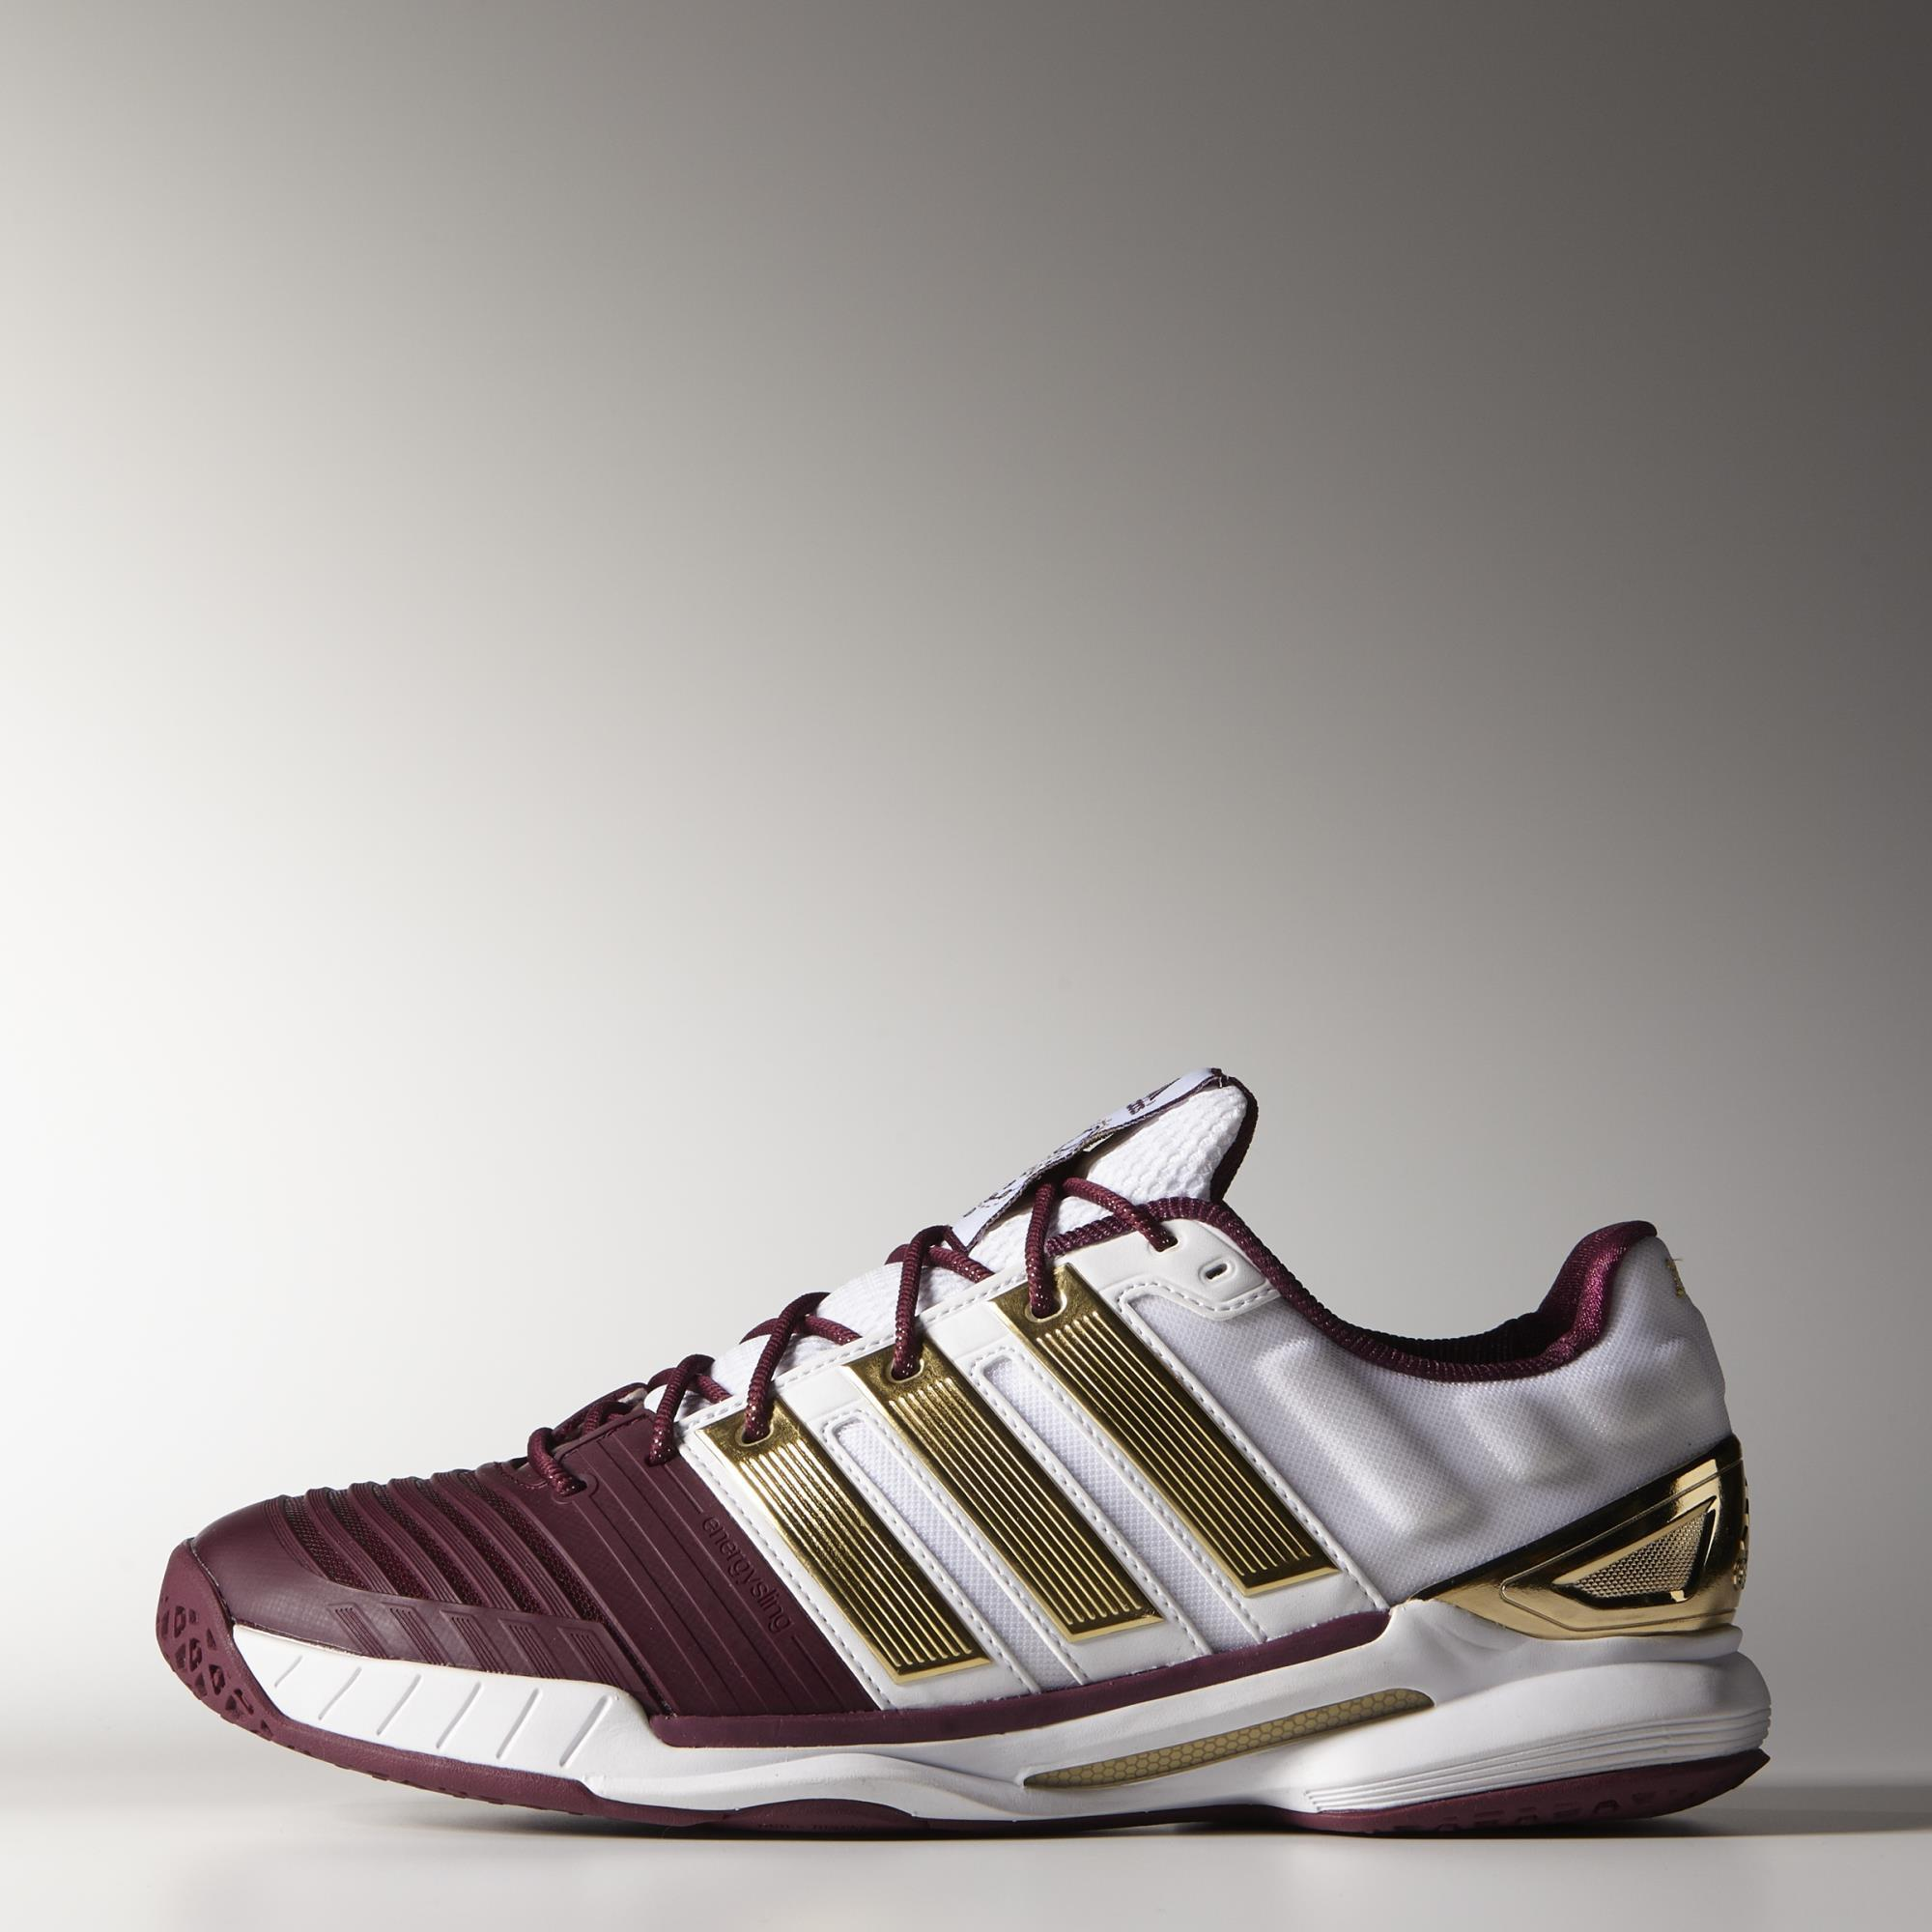 big sale 40938 41416 Adidas Mens adiPower Stabil 11 Limited Edition Indoor Shoes - WhiteGold -  Tennisnuts.com